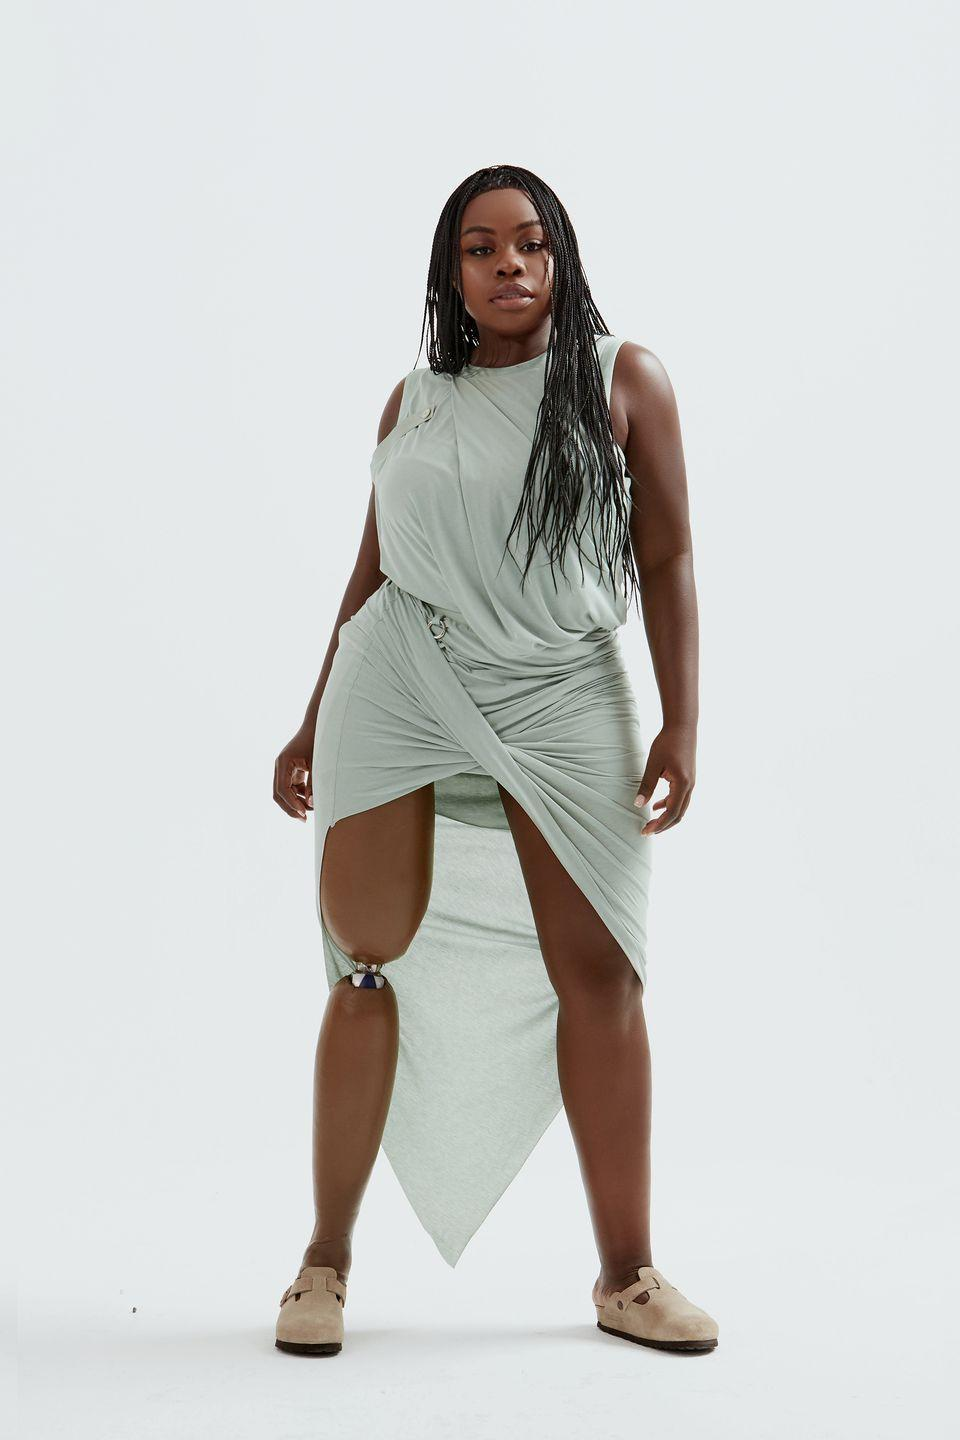 """<p>Private Policy is a label unafraid to address social issues—fall 2020 was themed around Big Pharma—but this new collection called """"Searching for Aphrodite"""" felt more immediately personal, albeit no less political. Co-designers Haoran Li and Siying Qu, who created it together while separately self-isolating in New York and Shanghai, wanted to unpack the idea of beauty and self-love. There was a new ease to the collection thanks to soft Grecian drapes and relaxed tailoring in calming shades of sage and lilac, shown on an inclusive range of modern muses, including amputee model and singer Marsha Elle and trans model and activist Dominique Castelano. <em>—Alison S. Cohn</em></p>"""